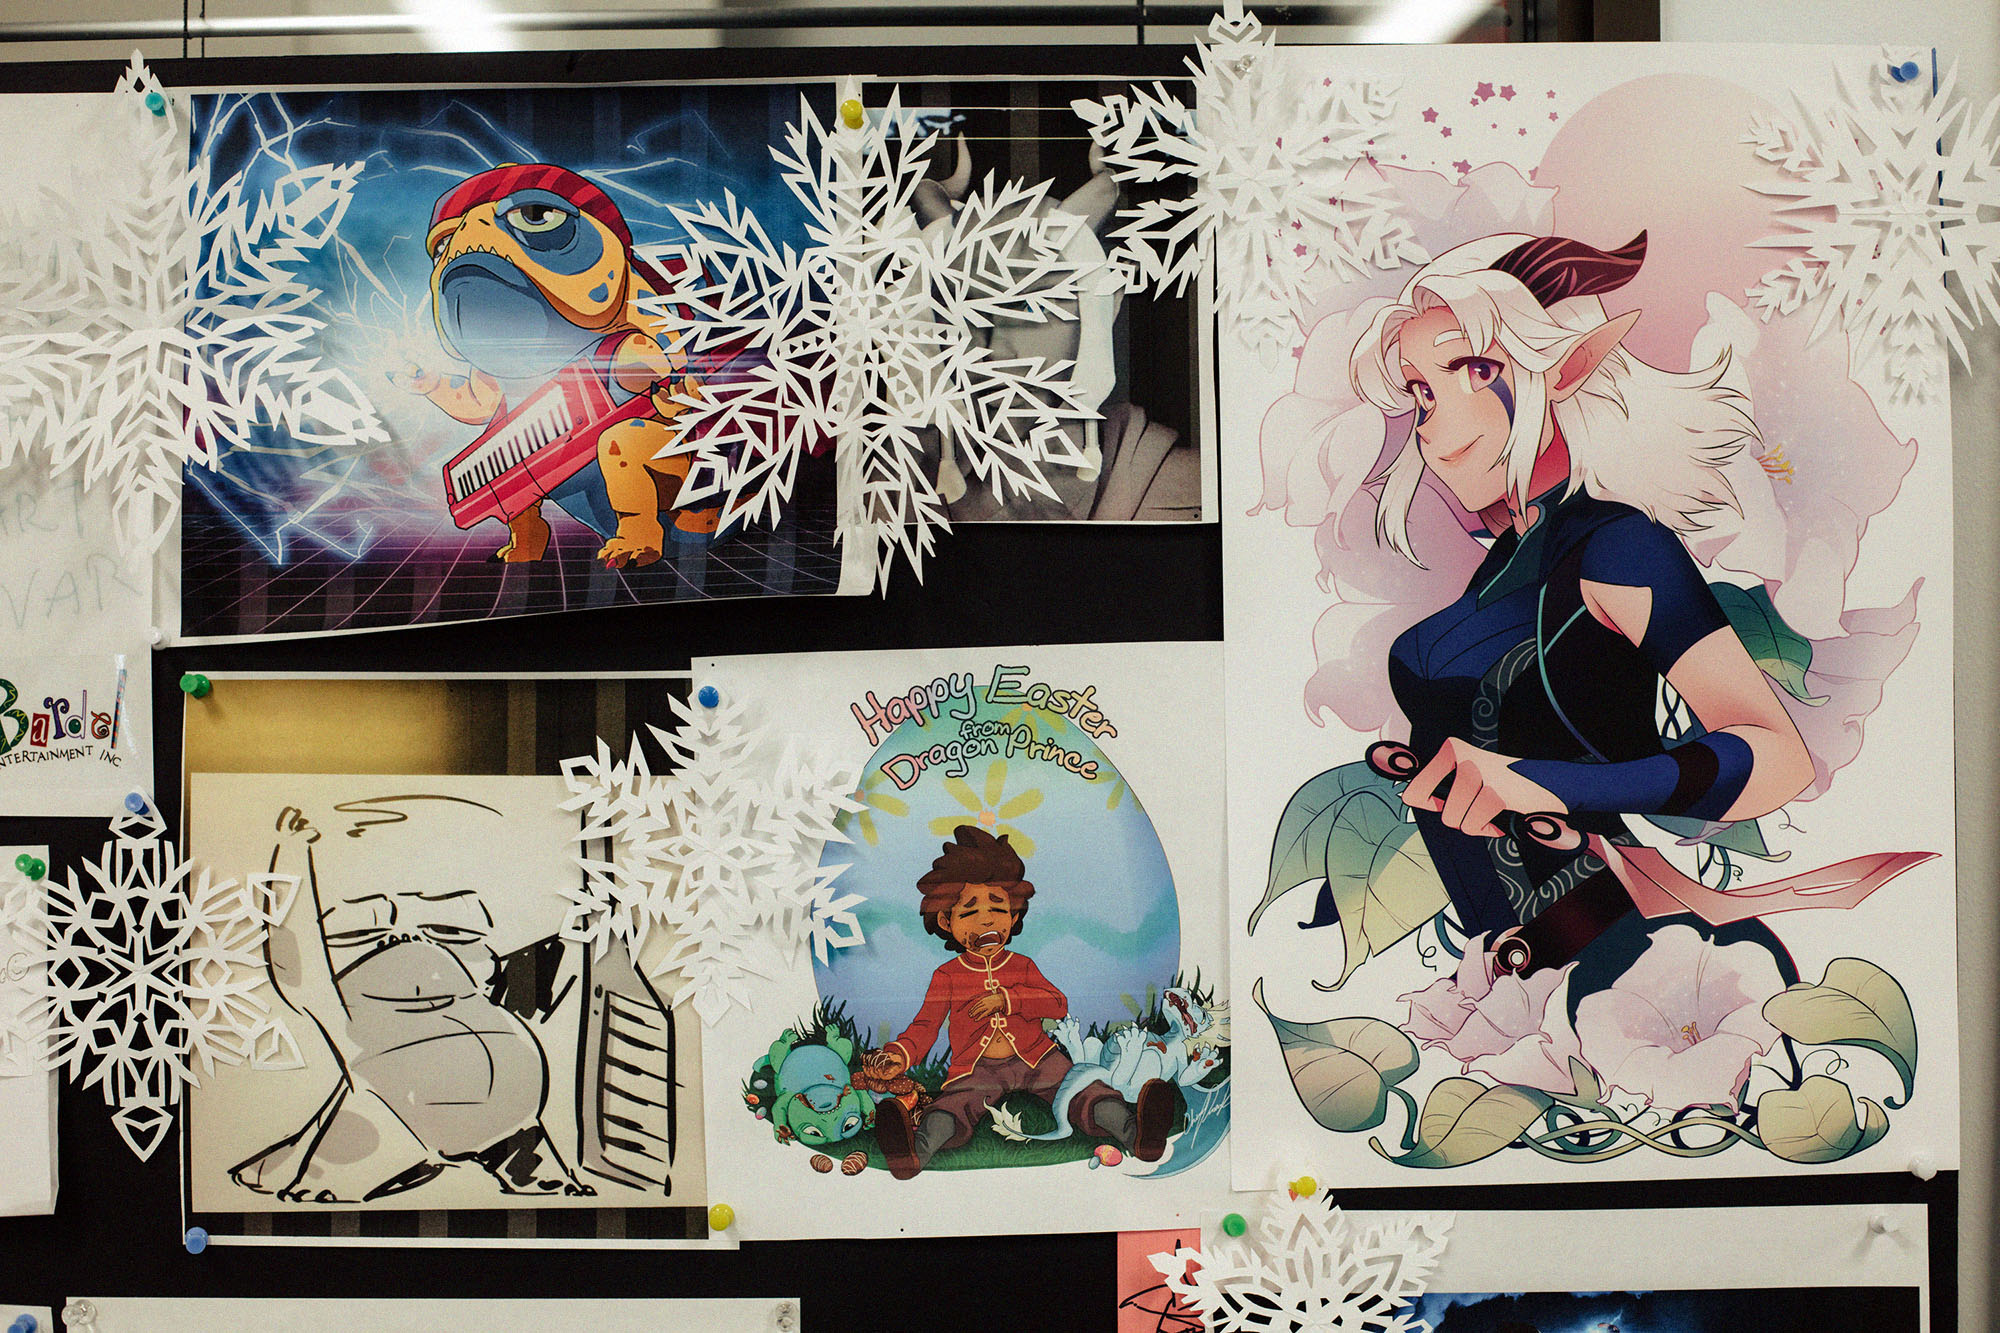 Posters and goofy illustrations from both fans and Wonderstorm artists. Photo by Rozette Rago.